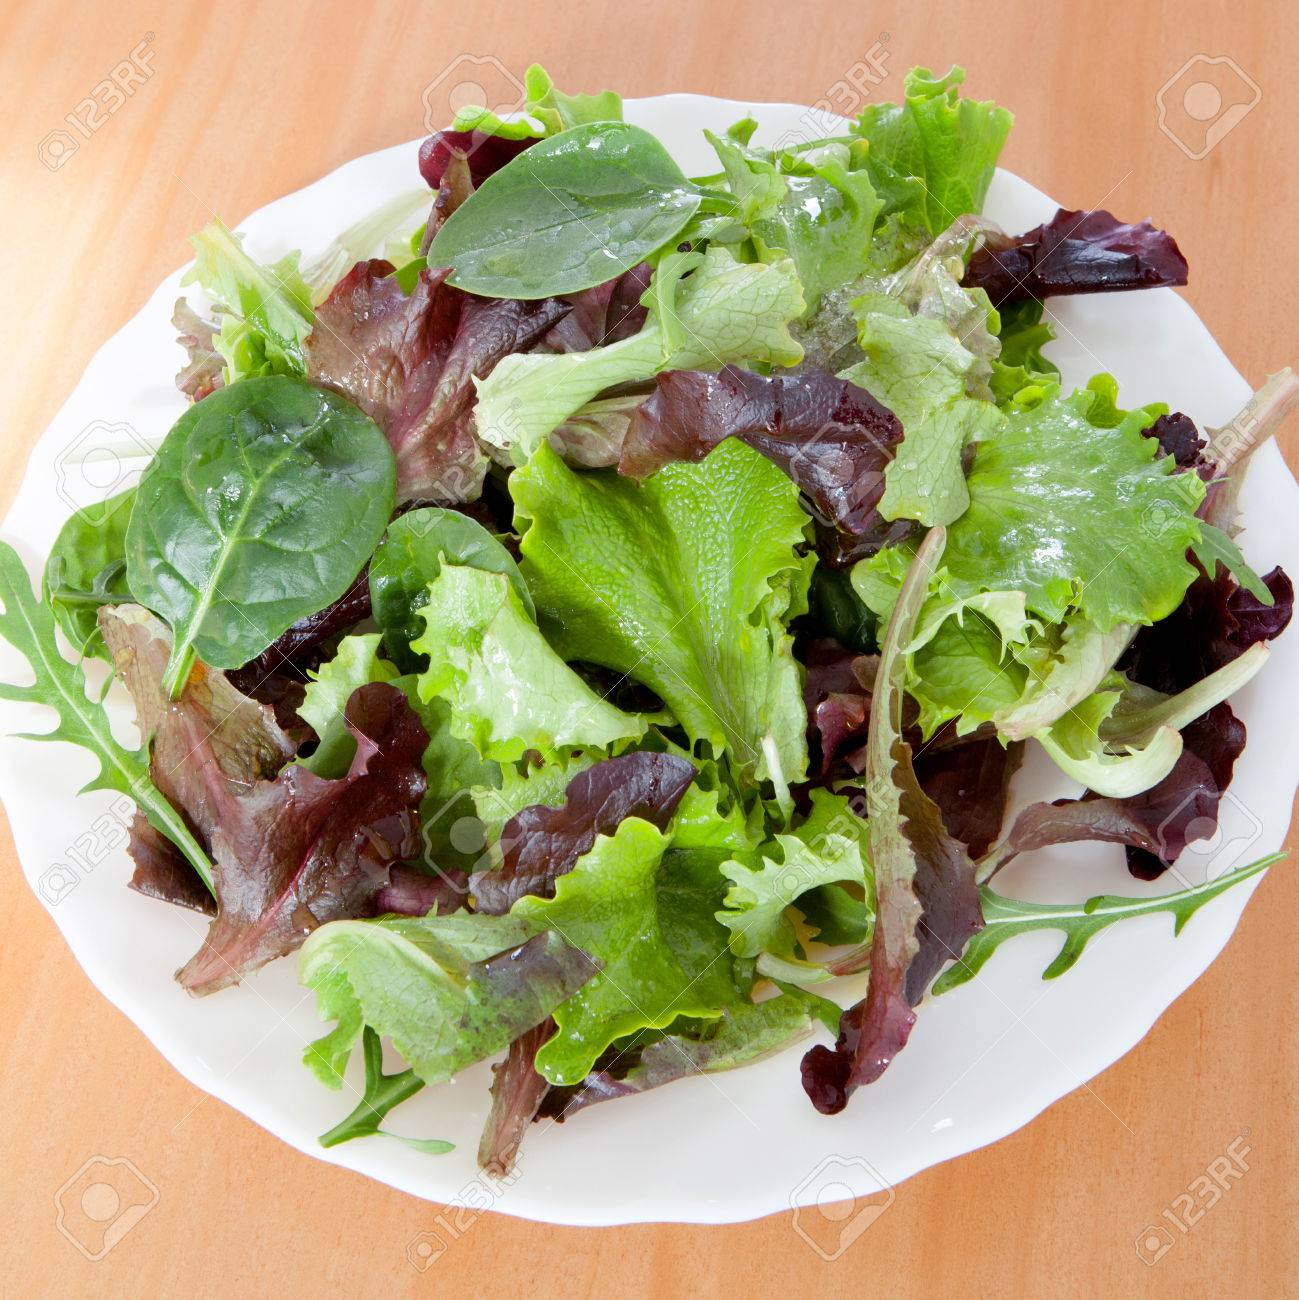 Delicious Salad Of Different Types Of Lettuce Leaves Dressed